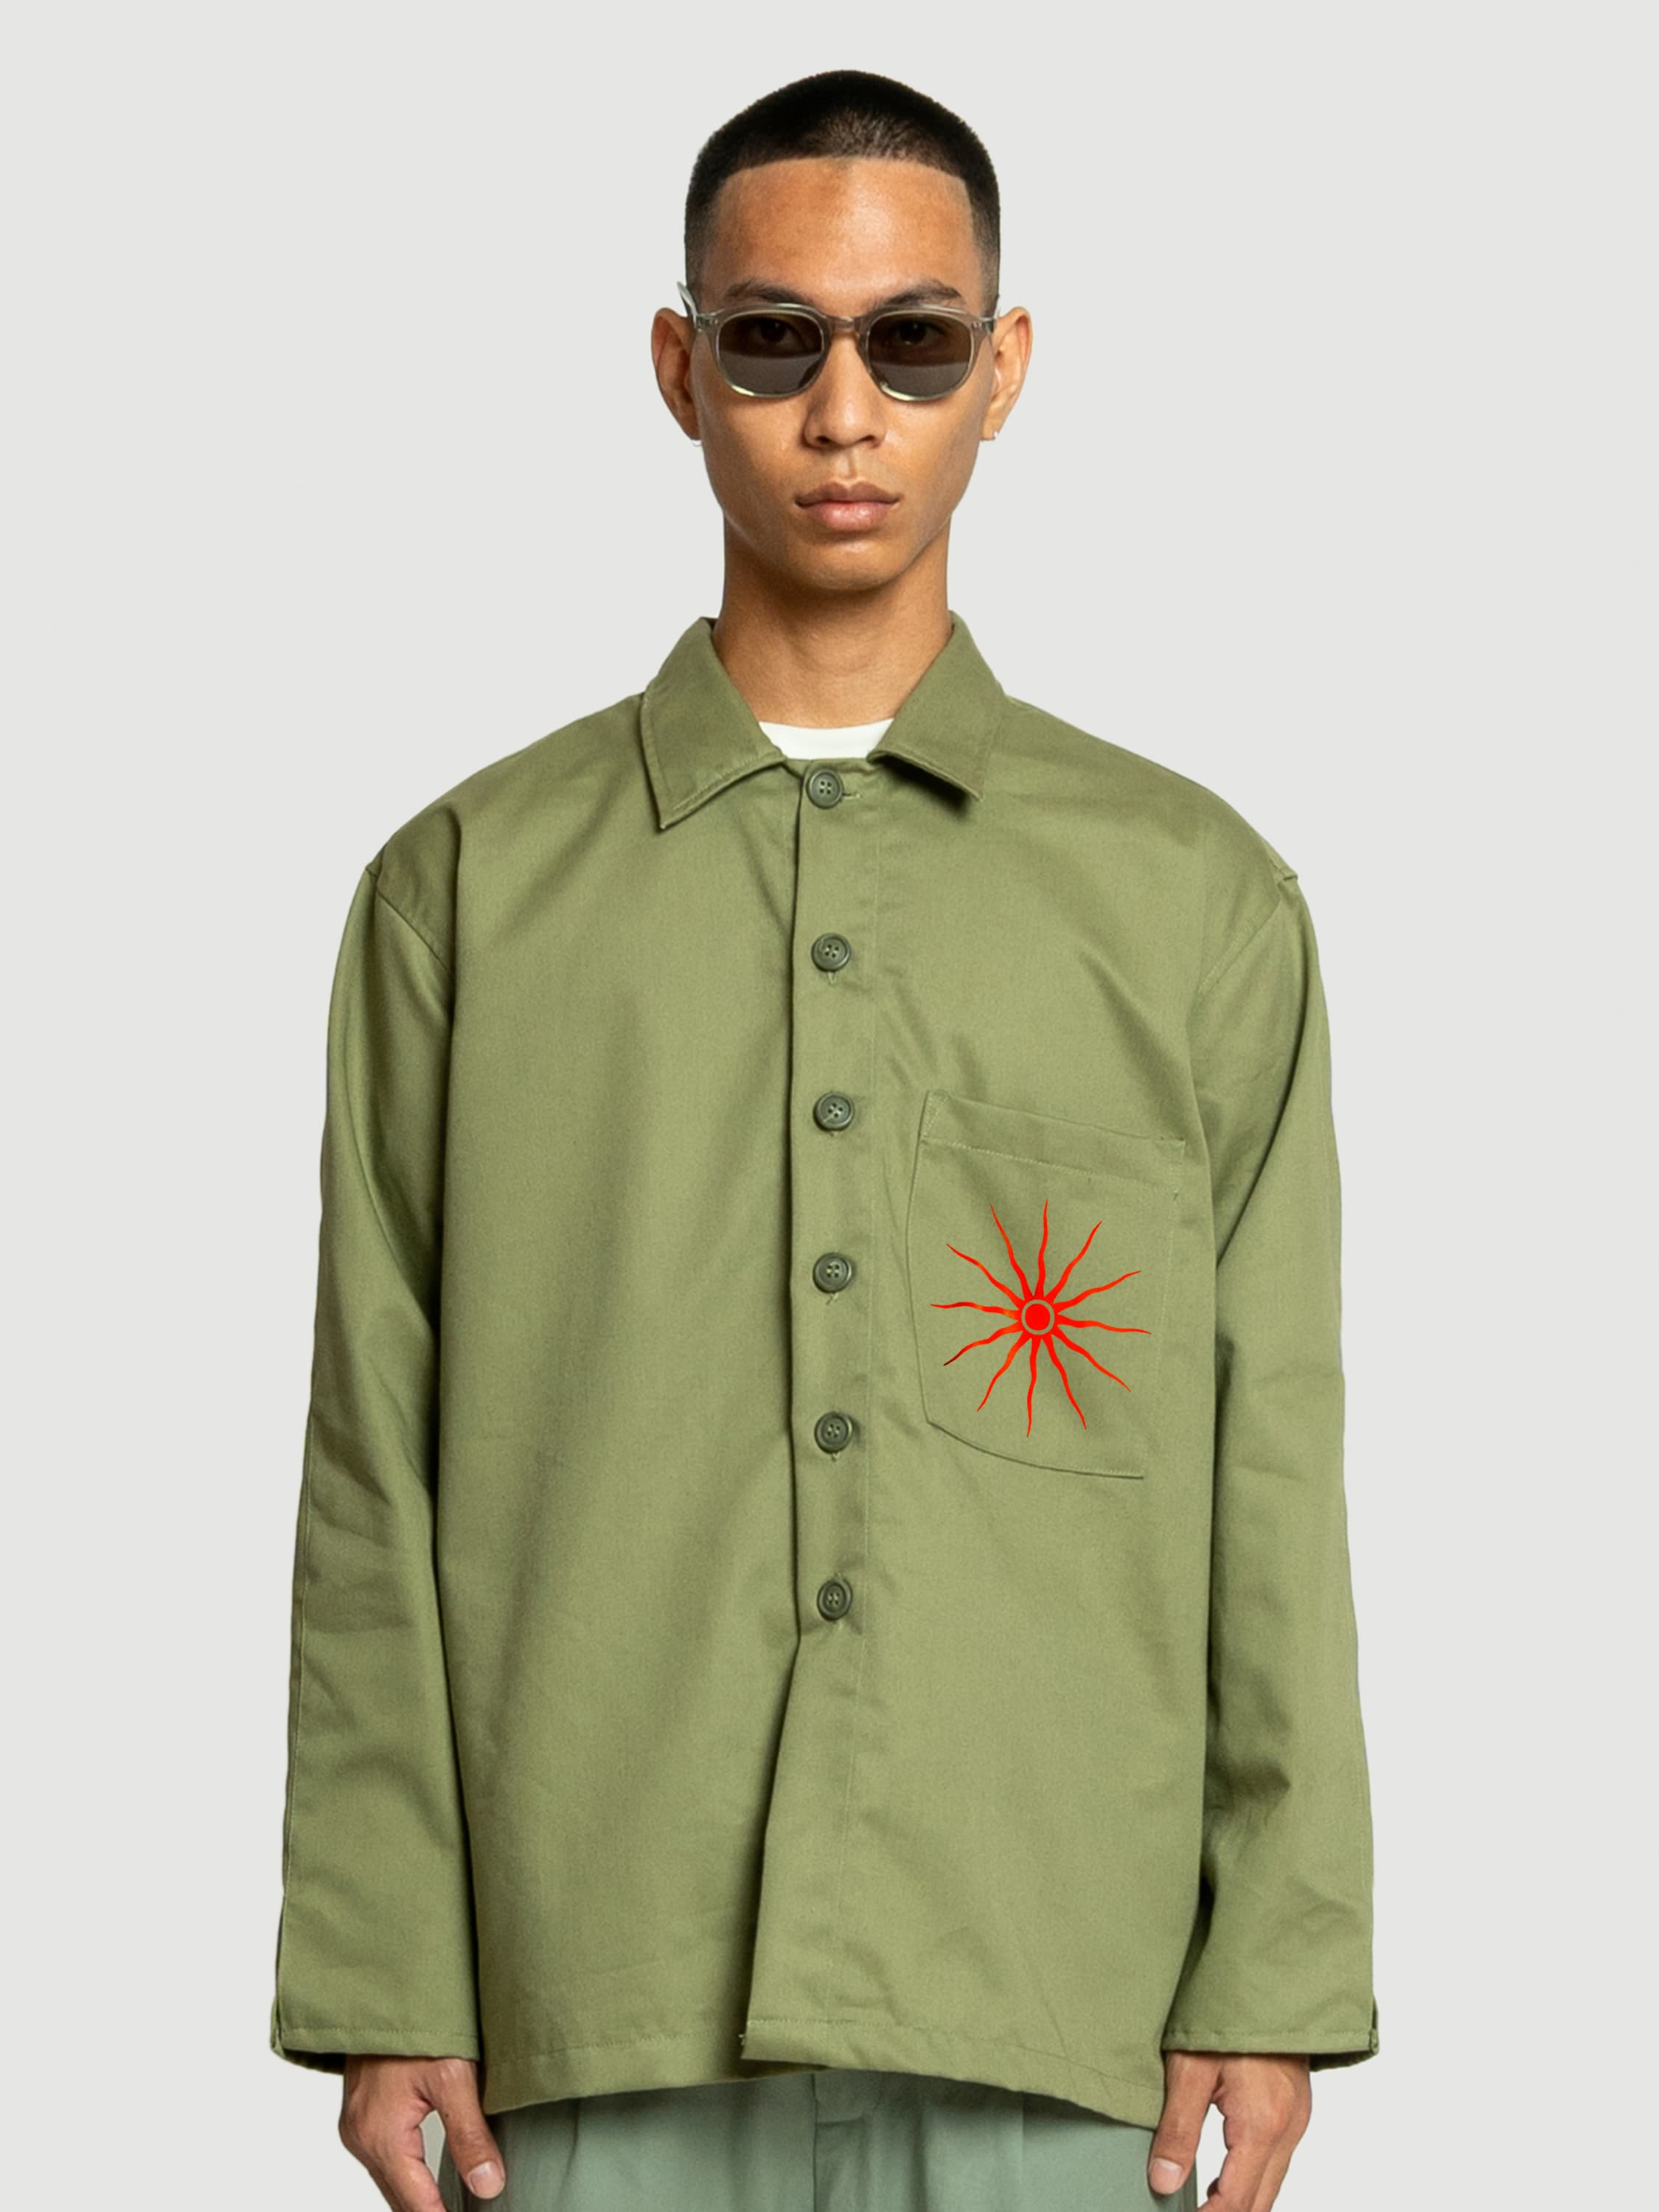 Sun of Malta Olive Jacket